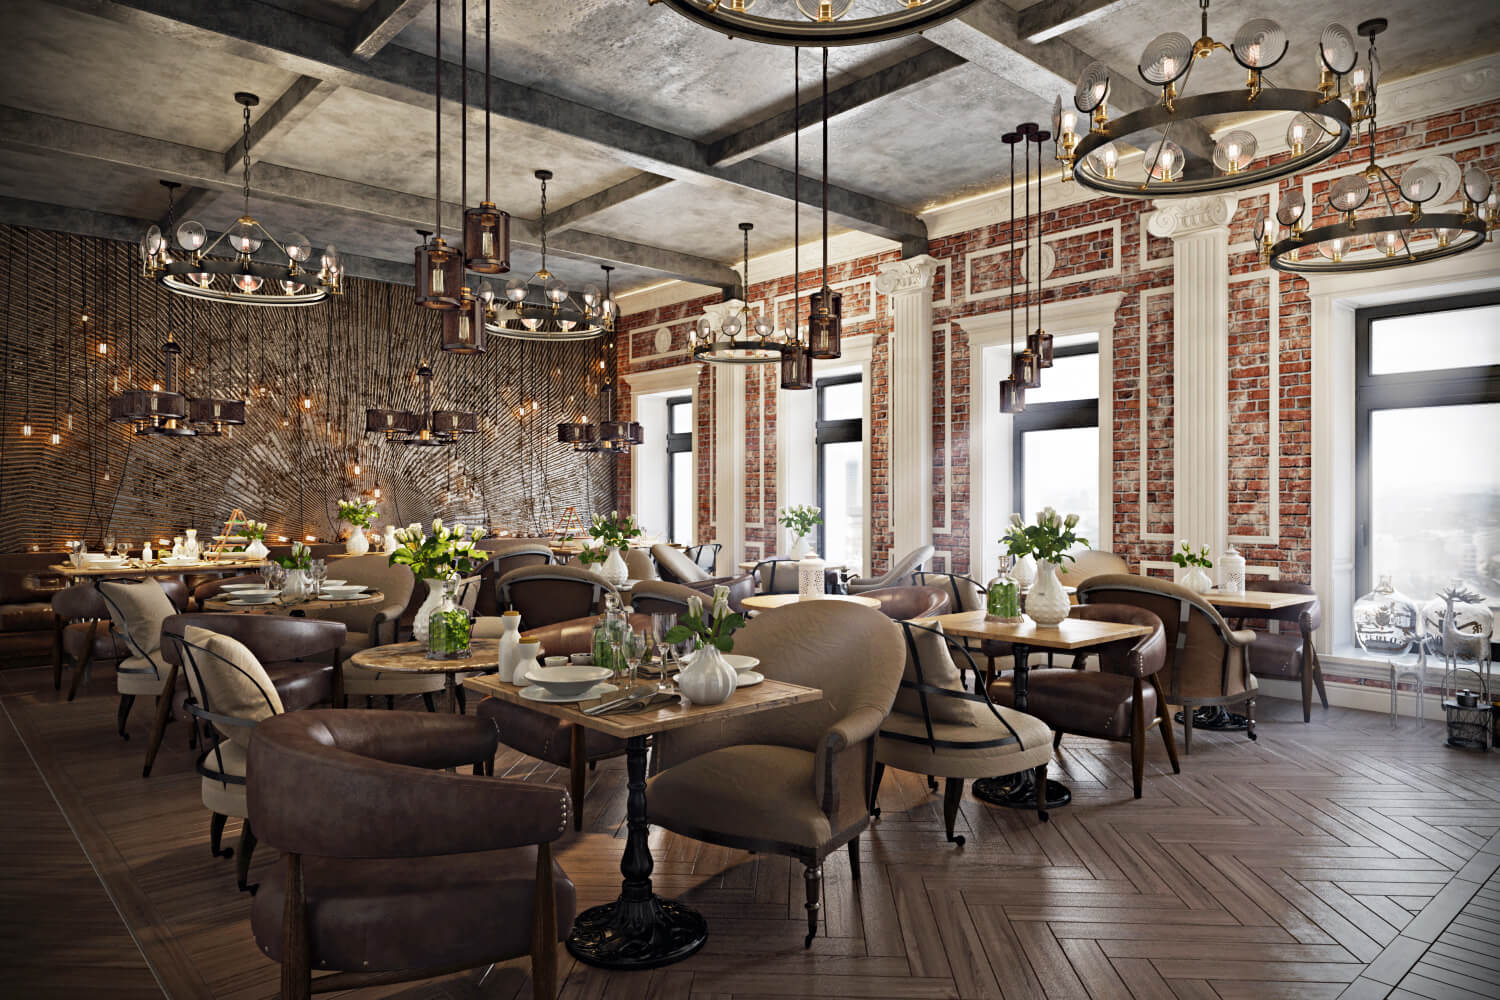 Stunning restaurant interior design the chic of original for Stunning interior designs